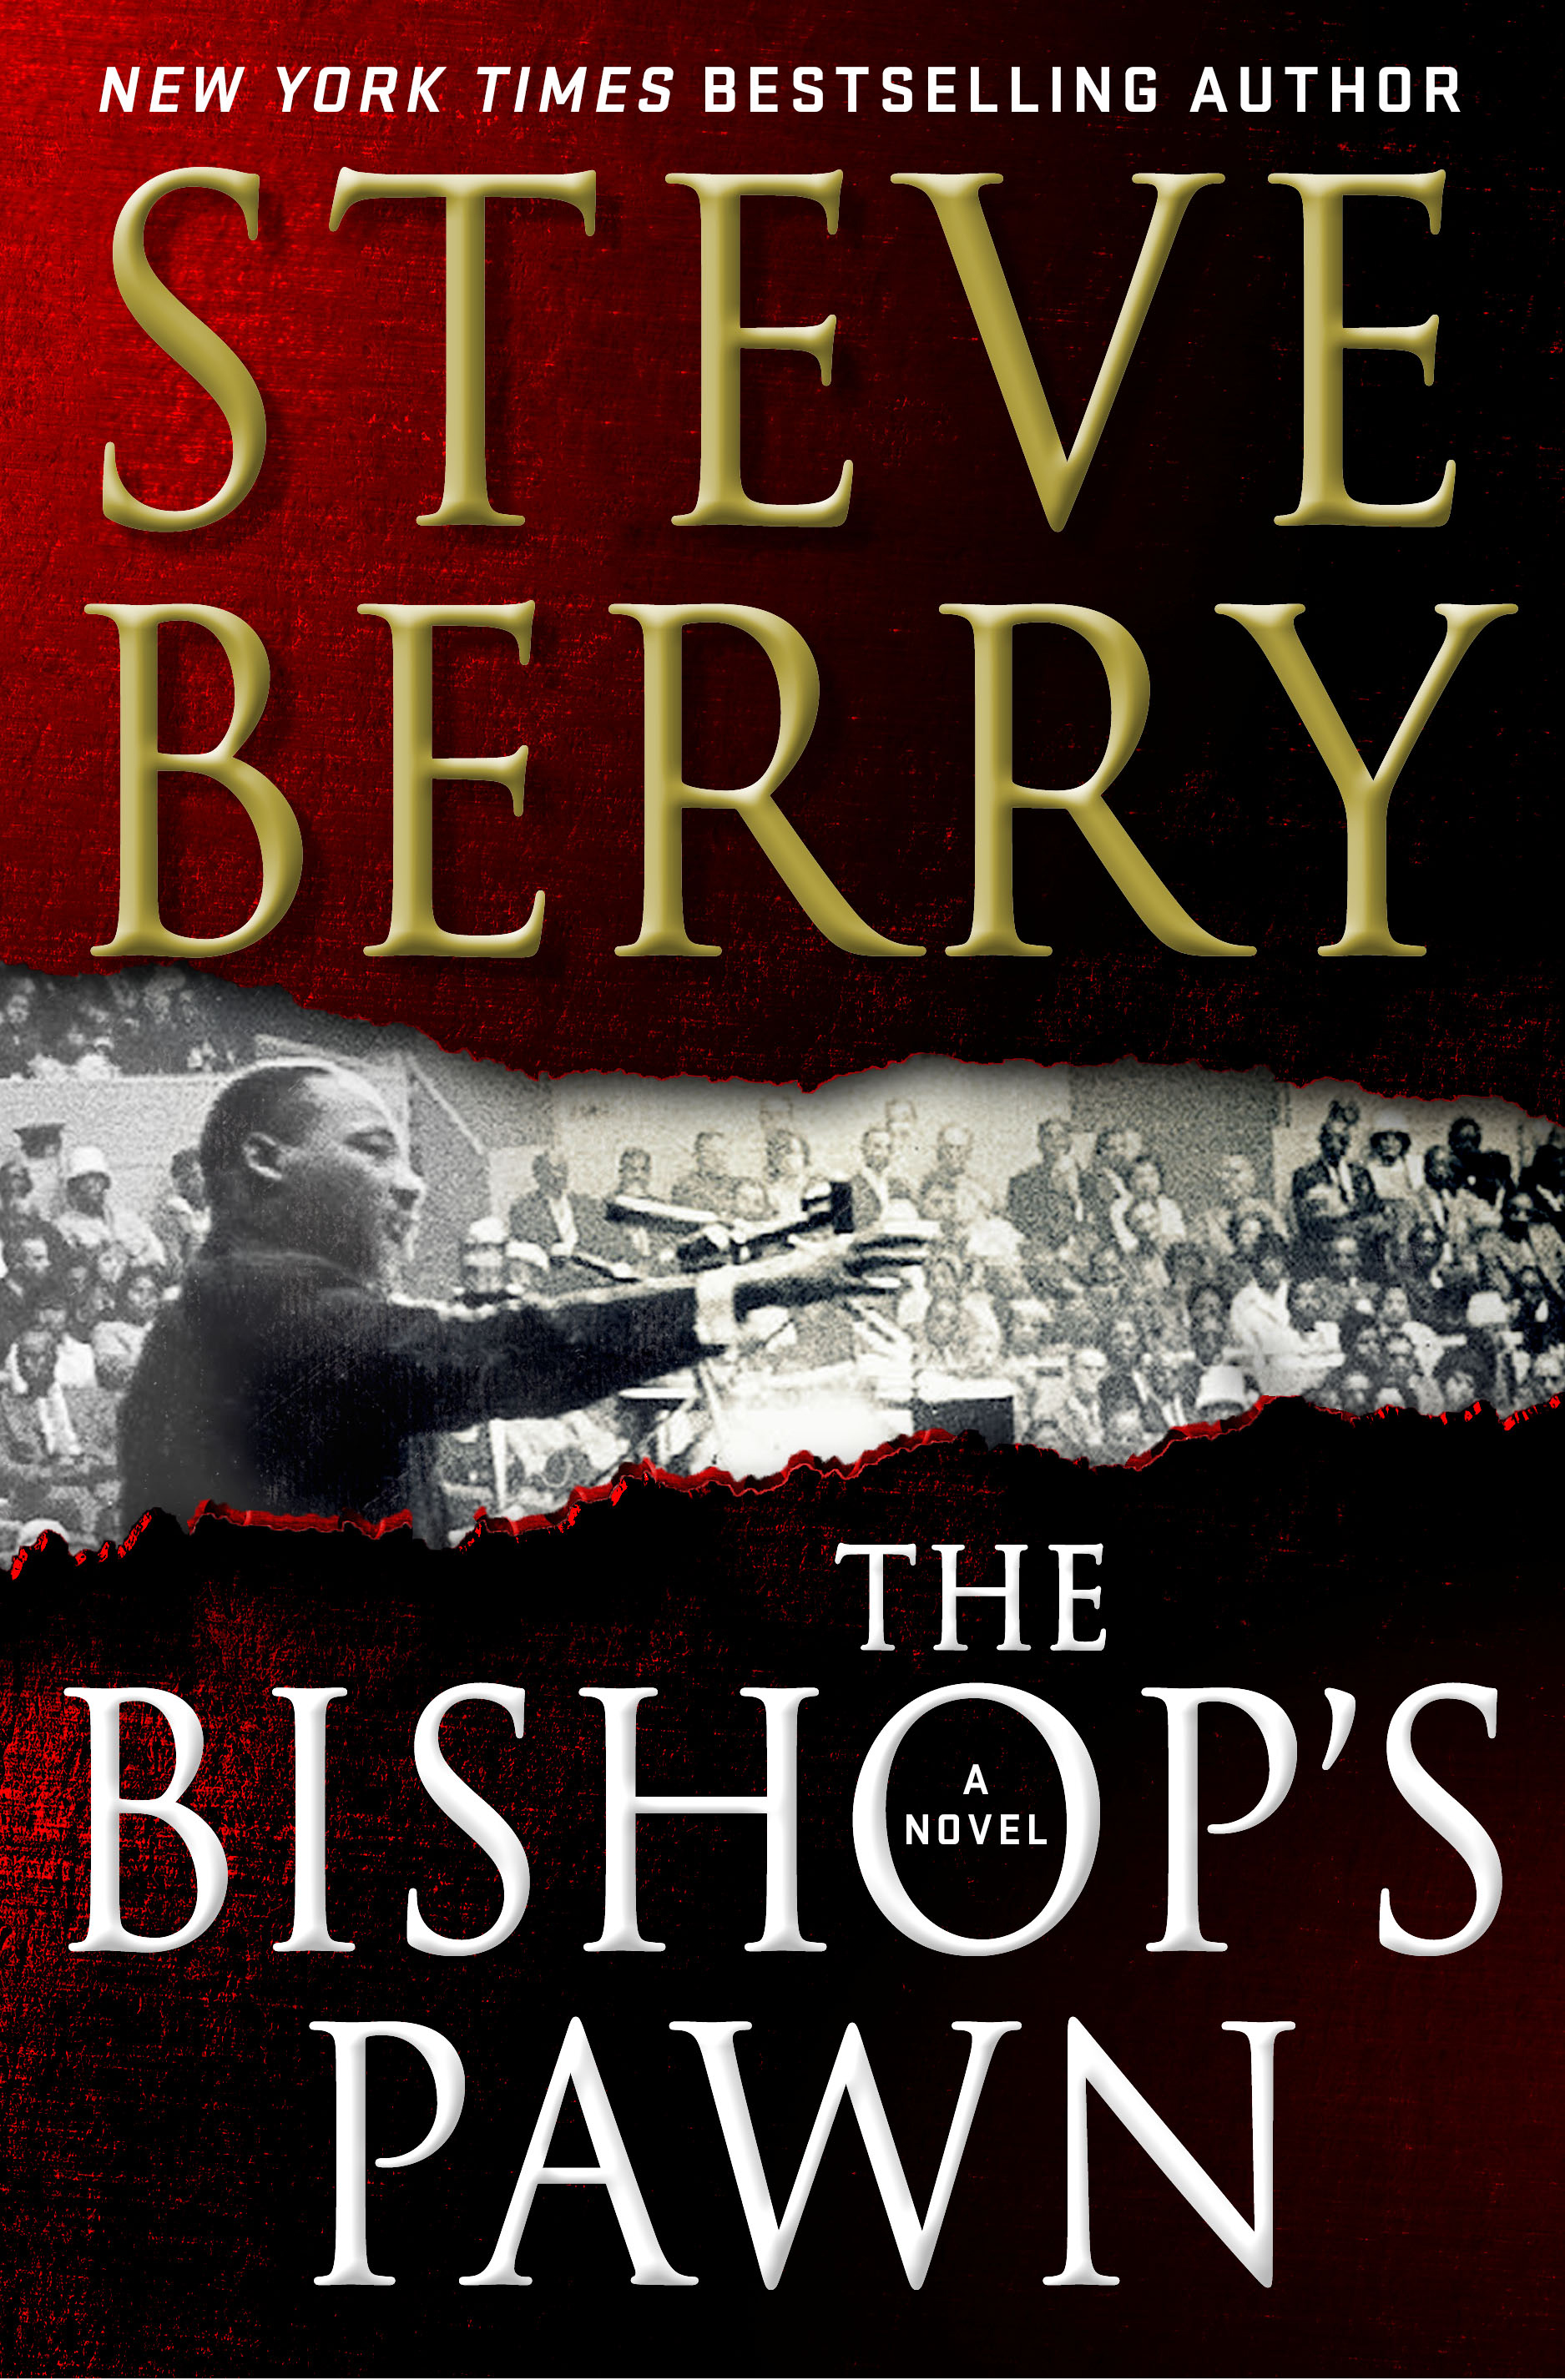 Book cover reading Steve Berry, Bishop's Pawn